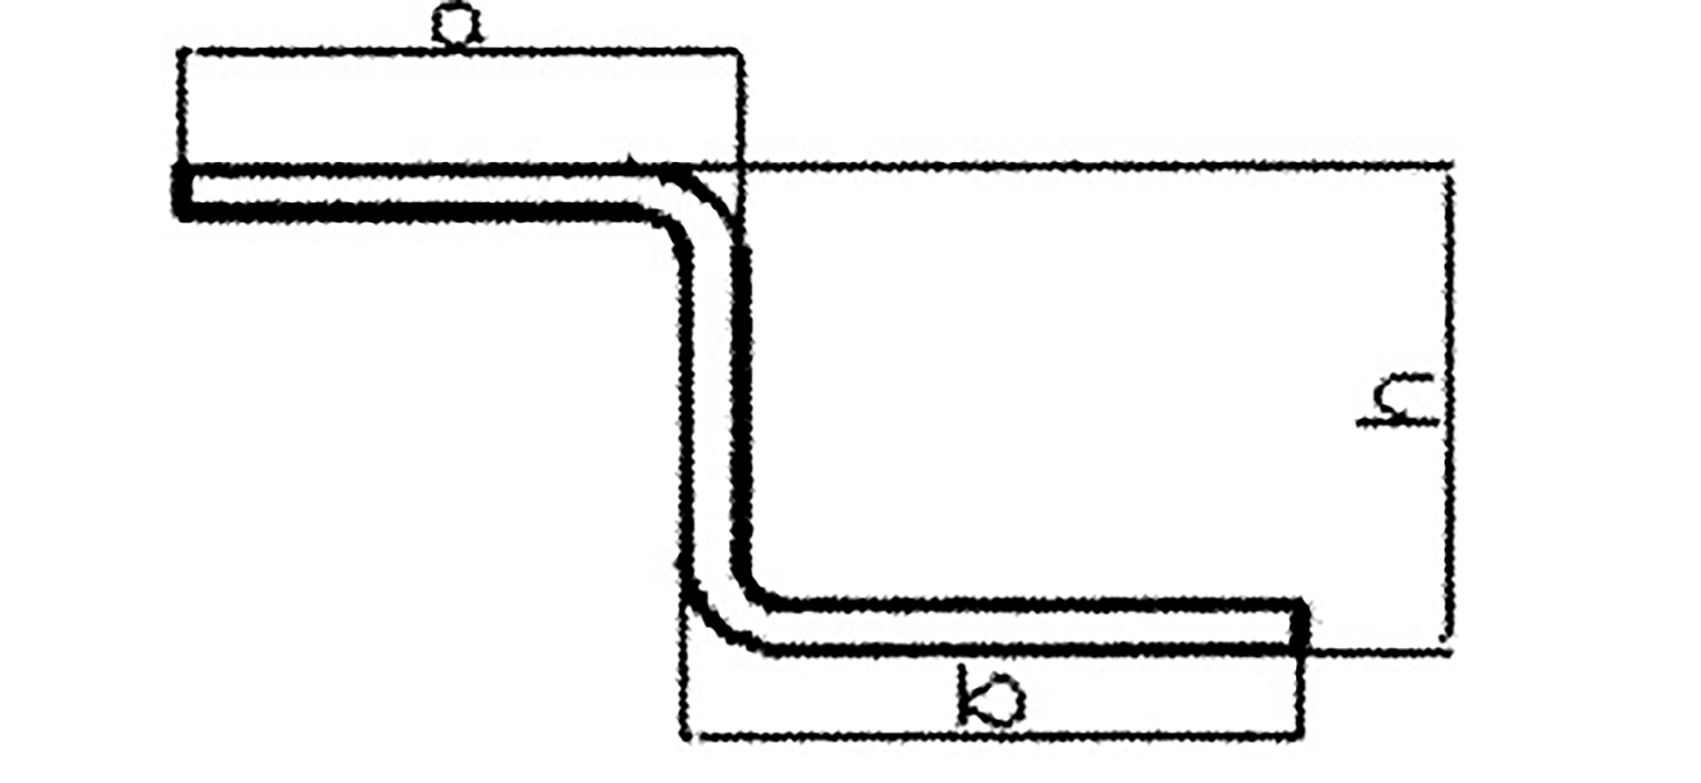 Fig. 1 Z-shaped bending die